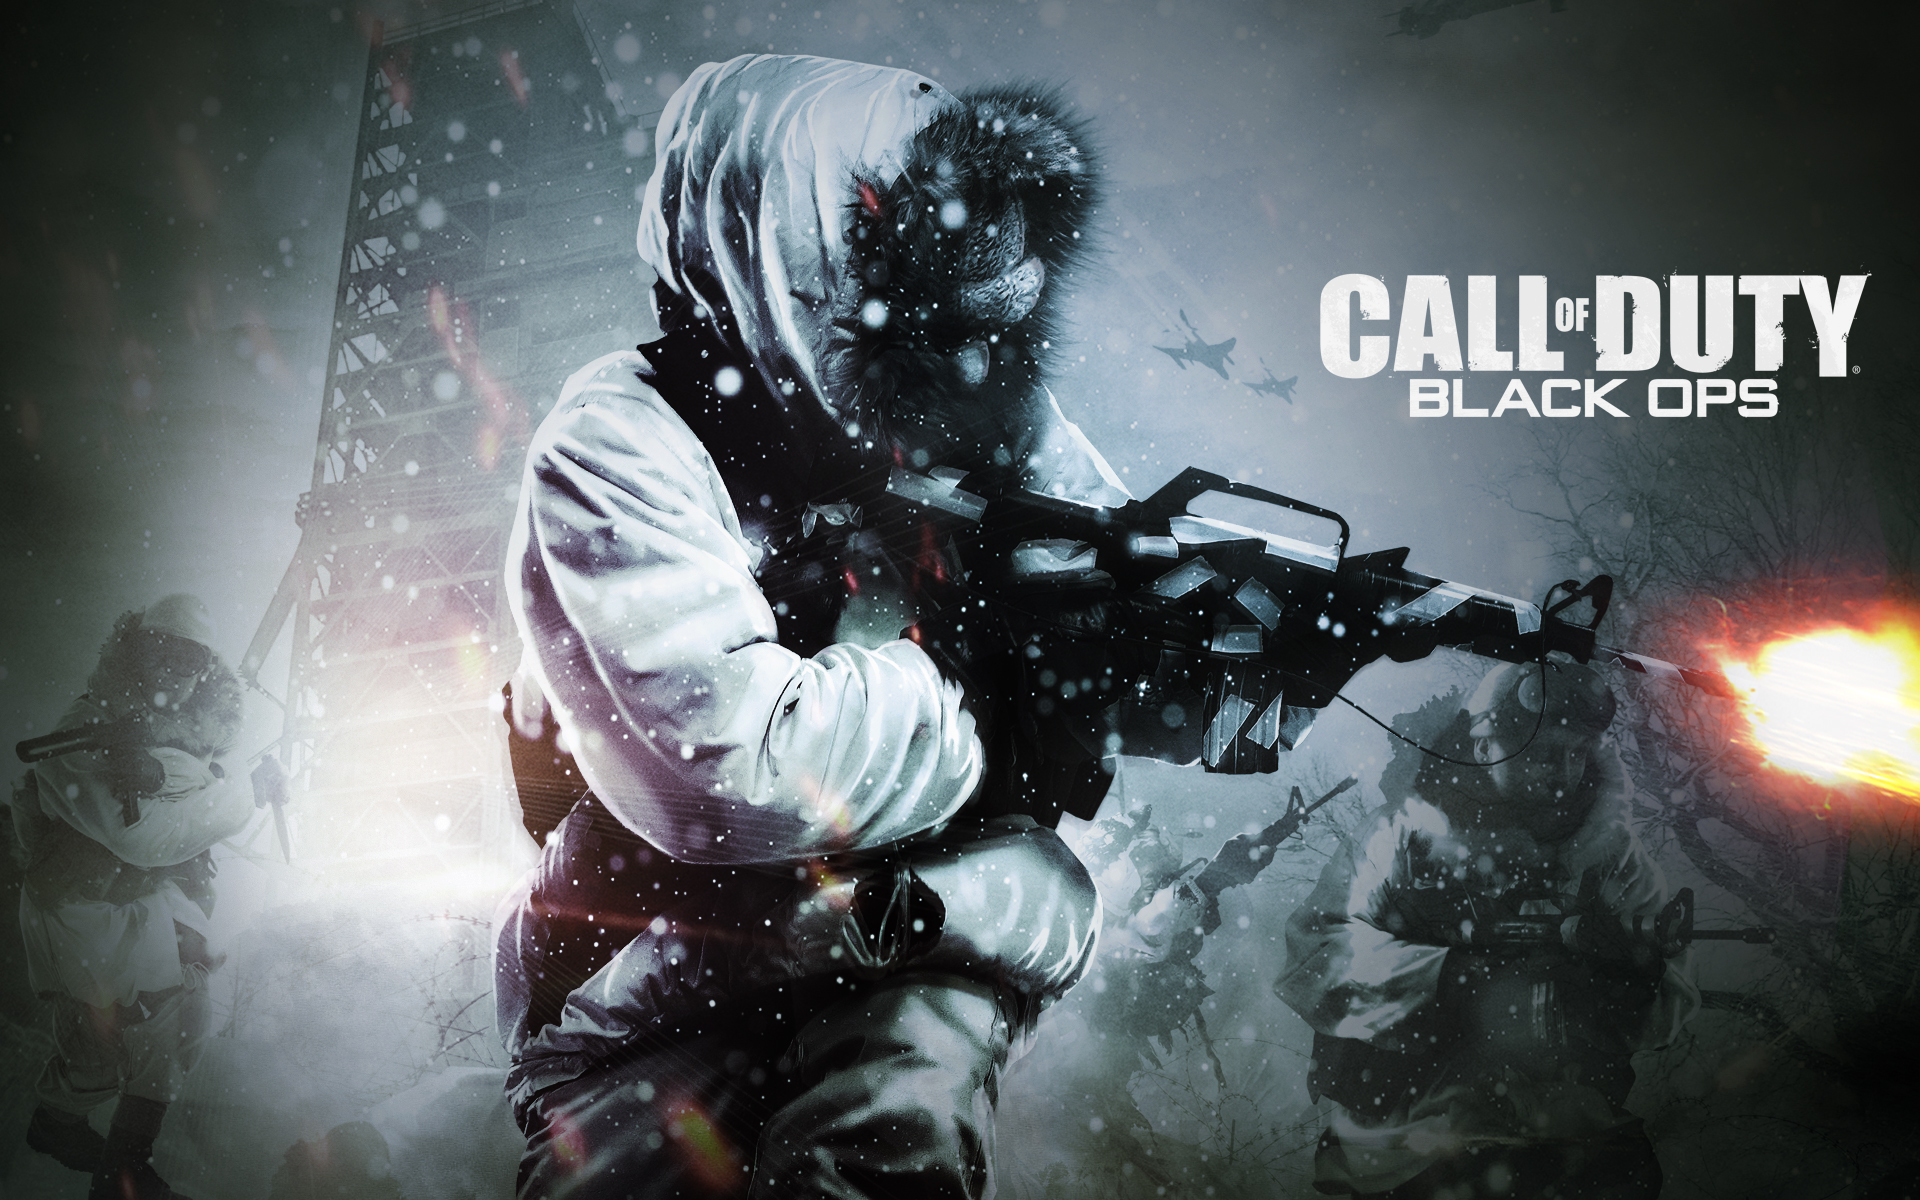 Call Of Duty Wallpapers, Best Call Of Duty Images - Amazing